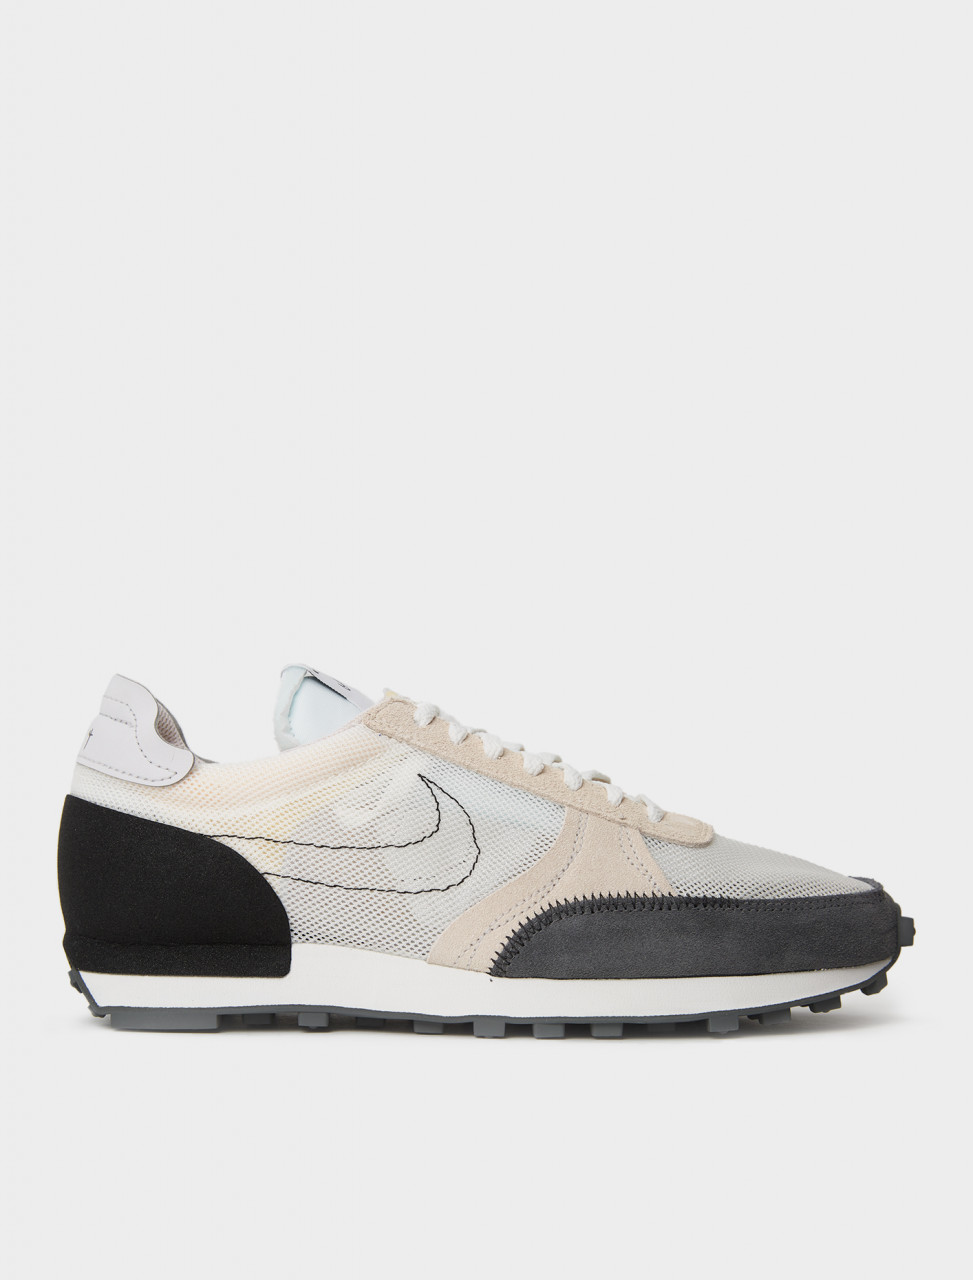 Nike Daybreak-Type Sneaker in Summit White